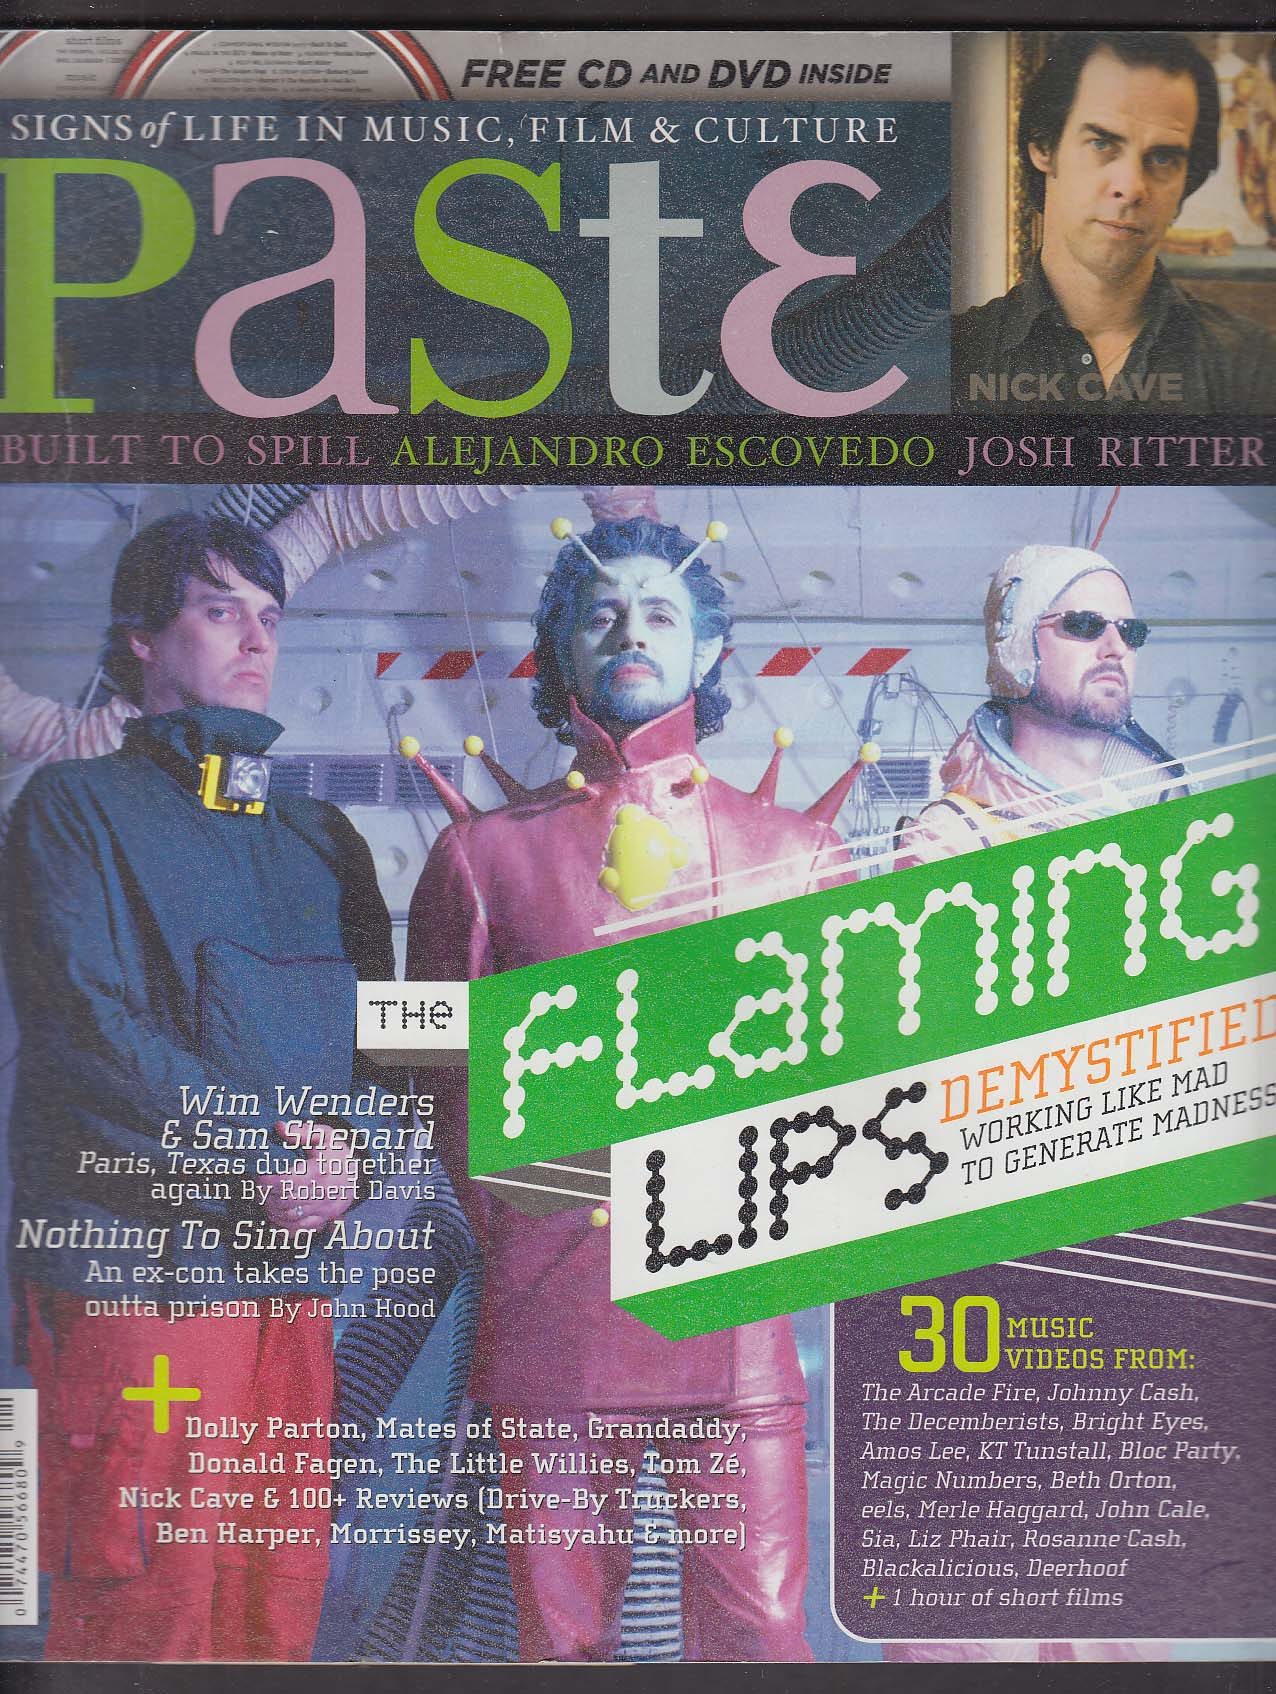 PASTE Flaming Lips Nick Cave Josh Ritter Win Wenders ++ 4-5 2006 + CD DVD